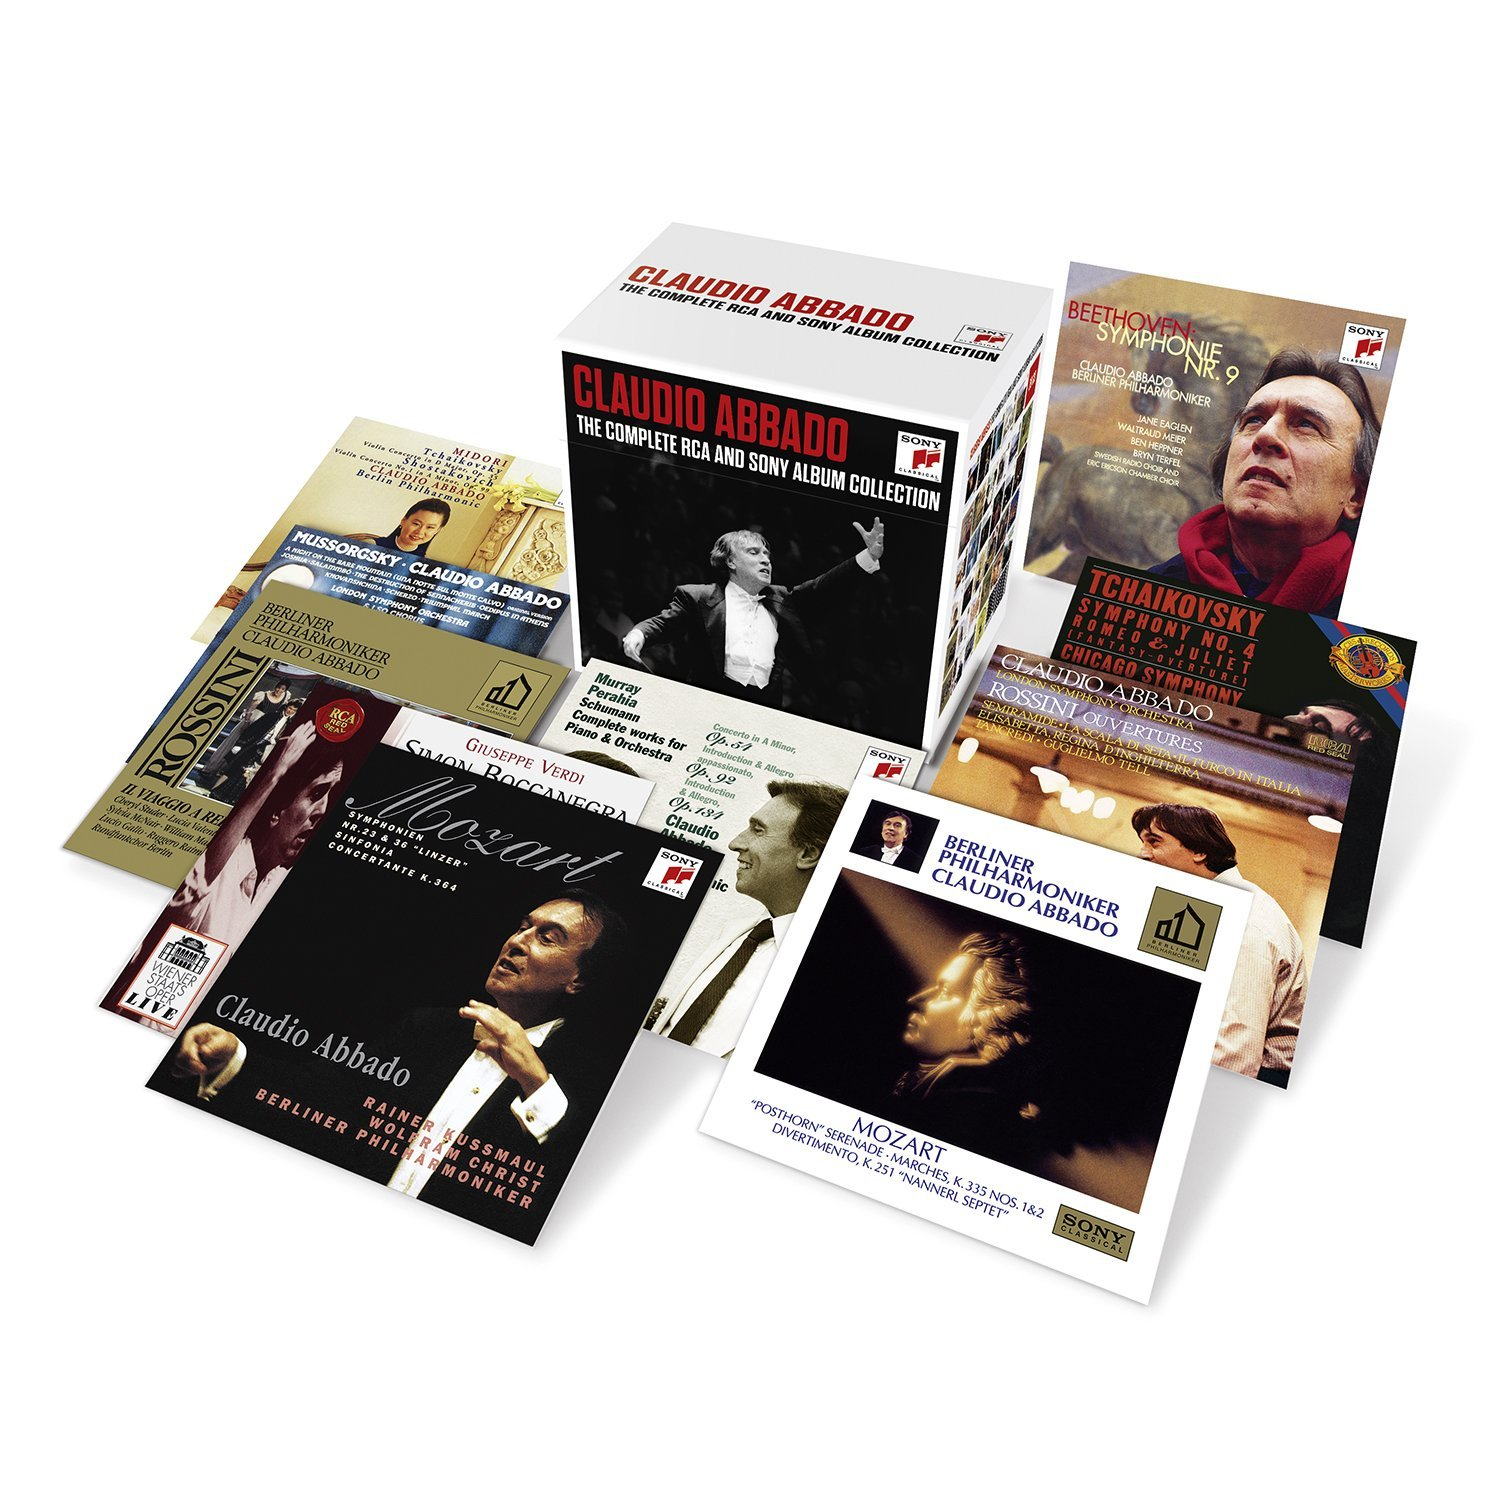 Claudio Abbado - The Complete RCA And Sony Album Collection: Box Set 39CDs (2014)